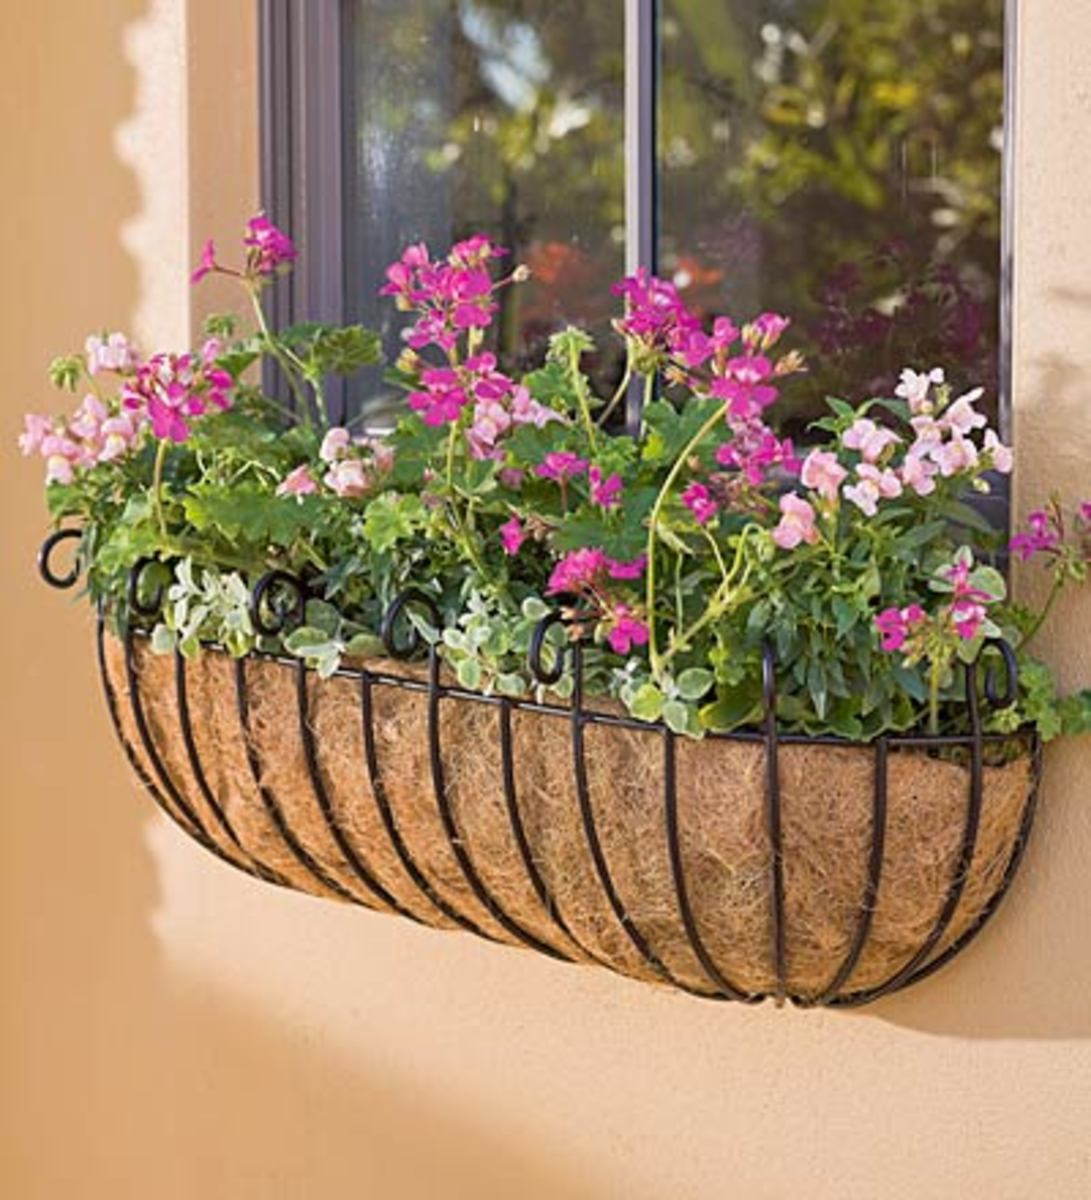 This metal framework, with its liner, is called a haybasket.